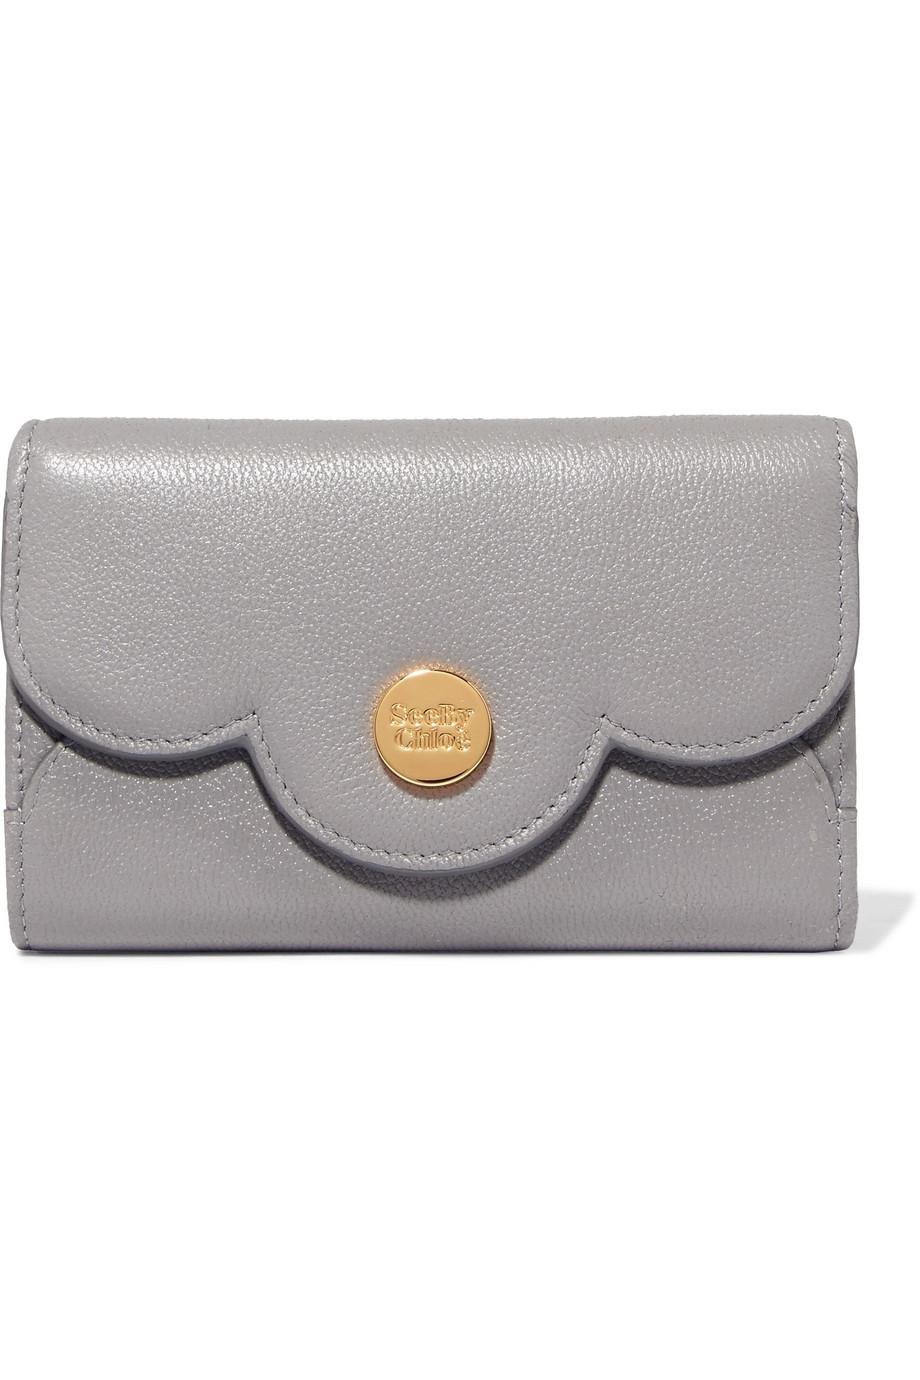 Polina Scalloped Textured-leather Wallet - Black See By Chloé Low Shipping Sale Online w33O6TJ